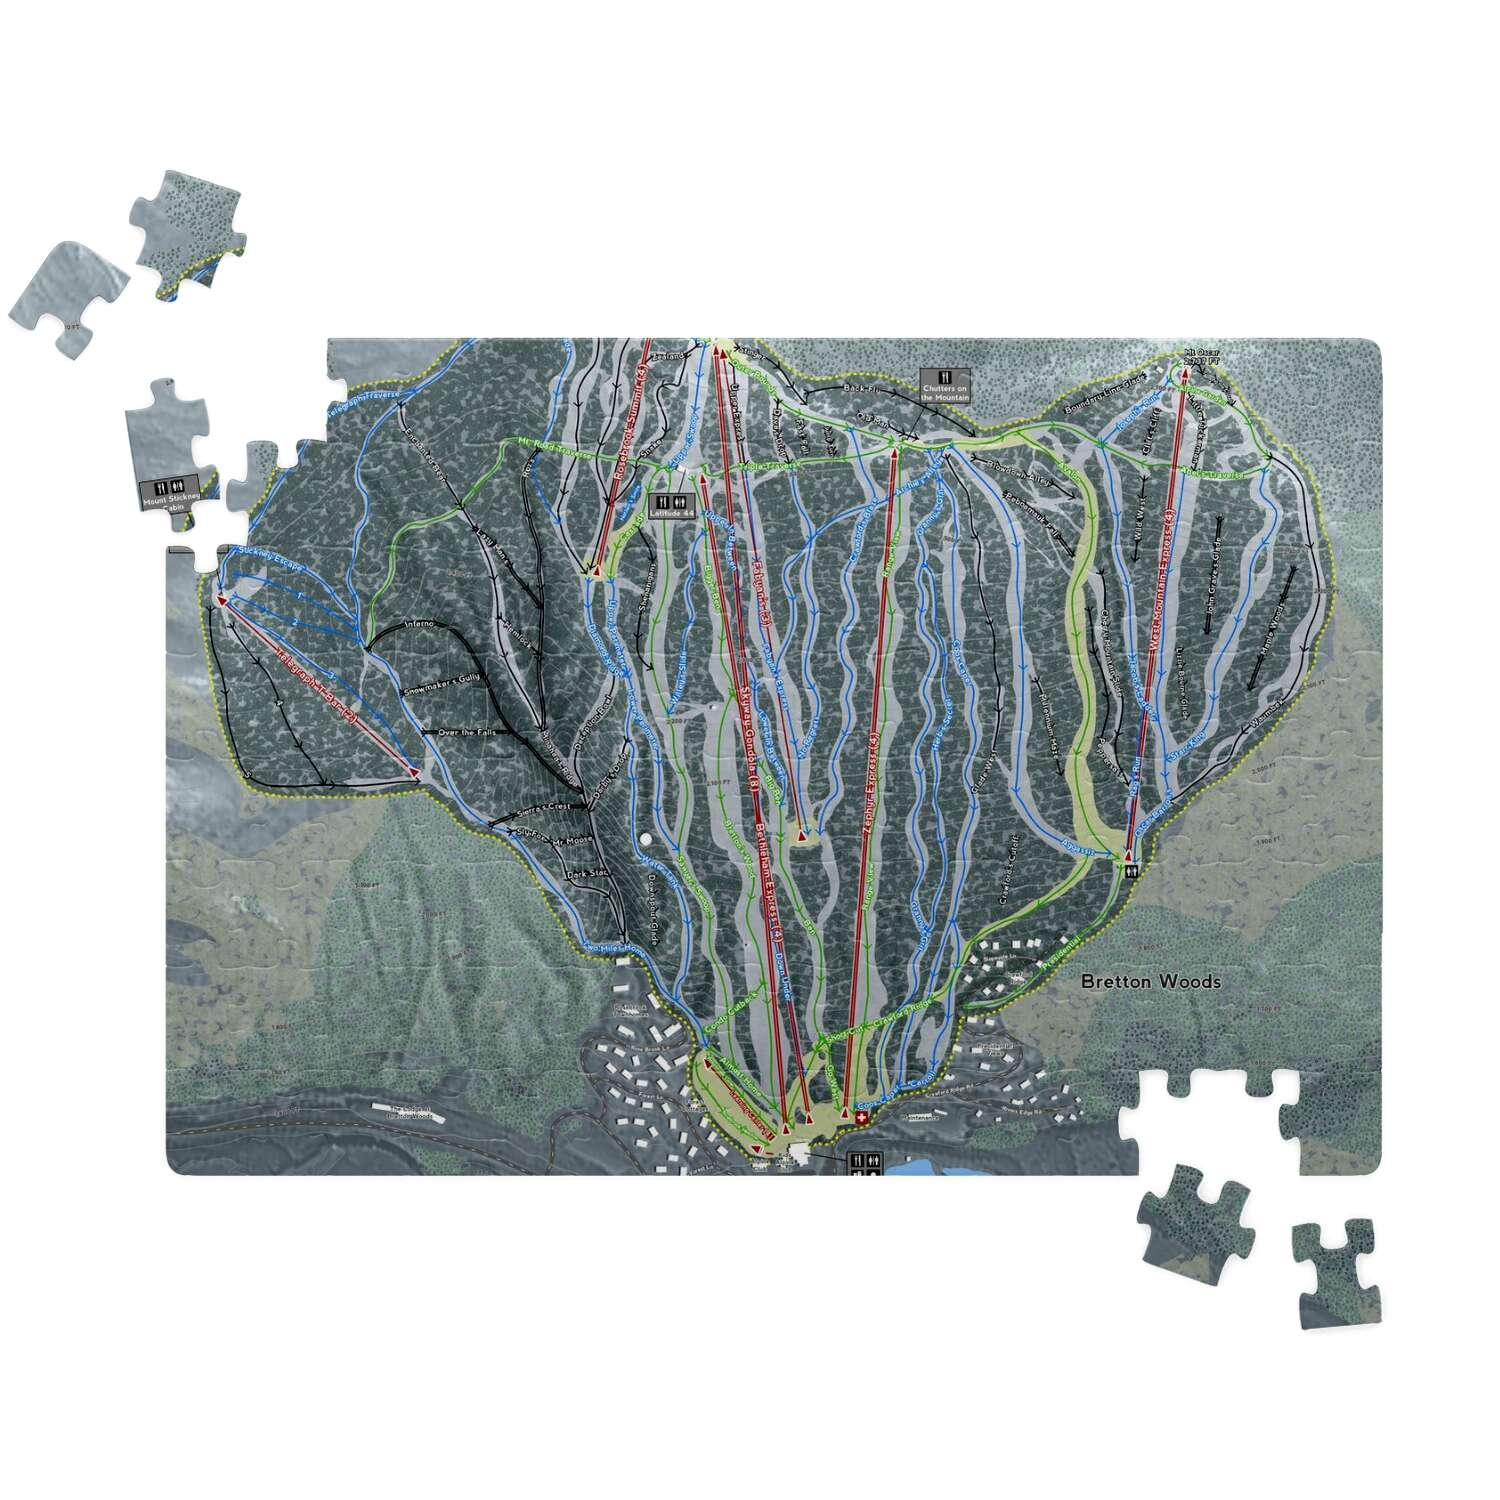 Bretton Woods New Hampshire Ski Resort Map Puzzles